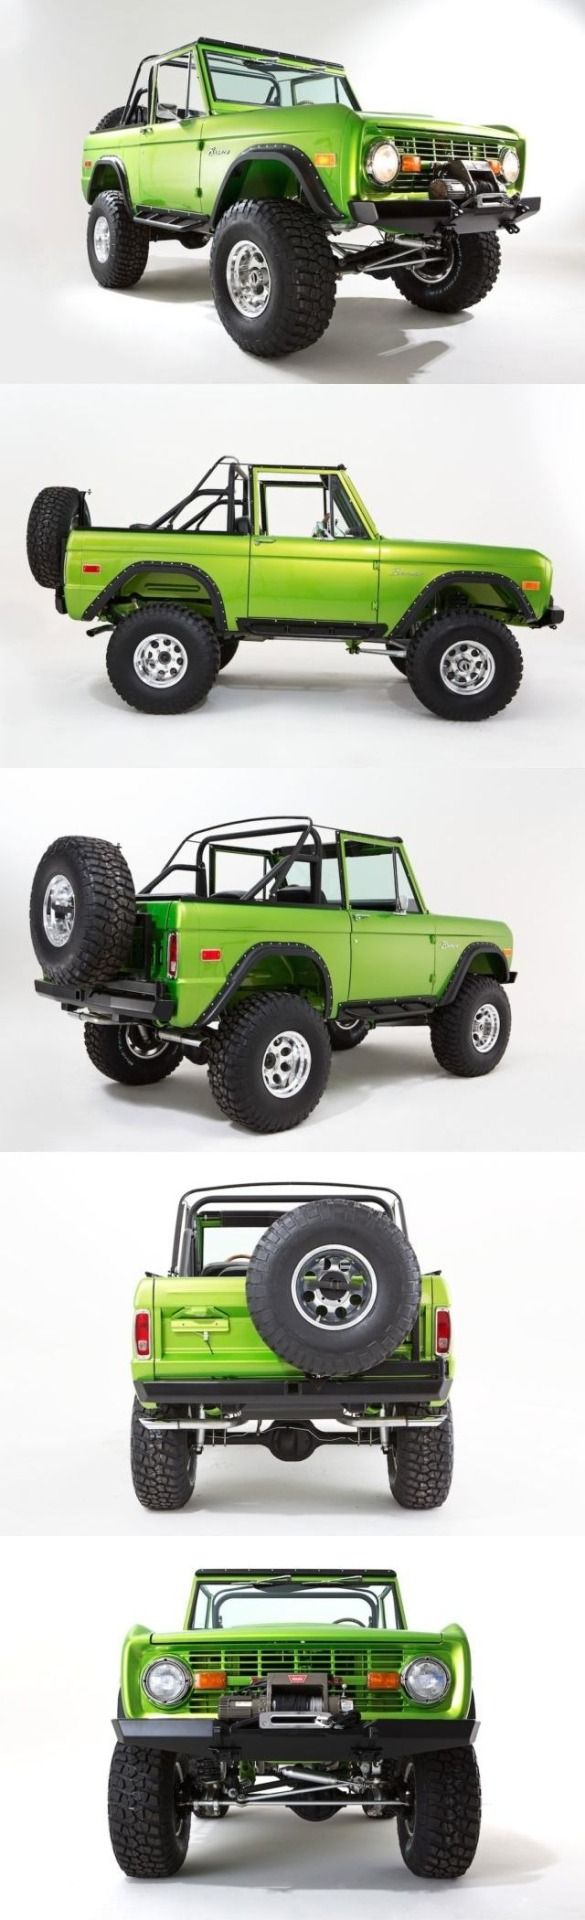 Ford Bronco: I WOULD DRIVE THIS TRUCK TIL THE WHEEL FELL OFF! THEN PUT ON SOME NEW WHEELS AND DRIVE IT SOME MORE!